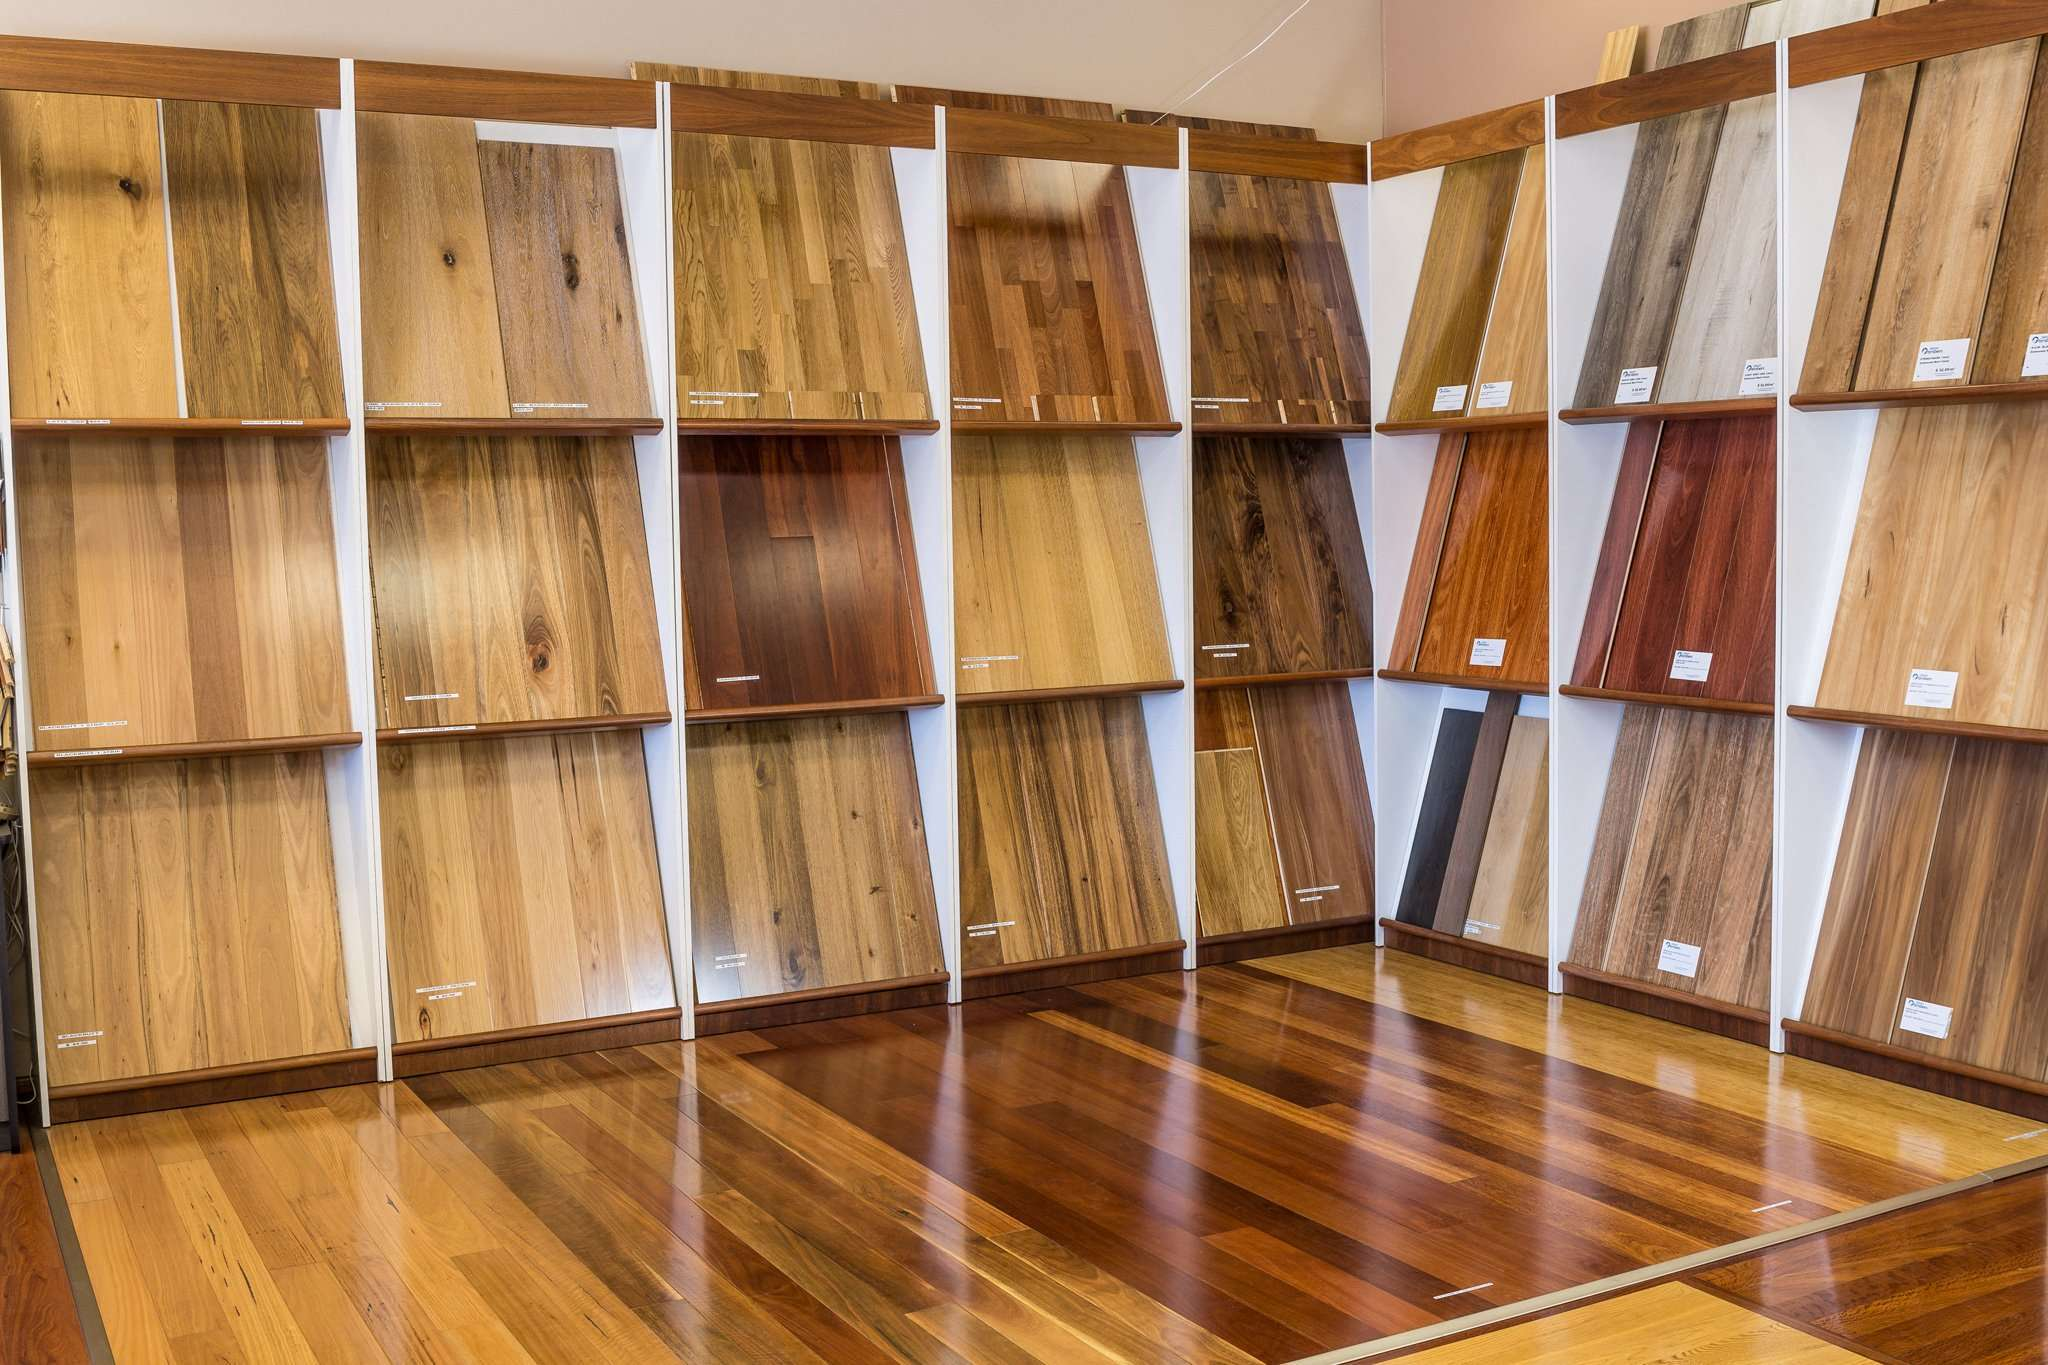 Timber Veneer Perth Wooden Timber And Cork Flooring Perth A1 Wood Floors